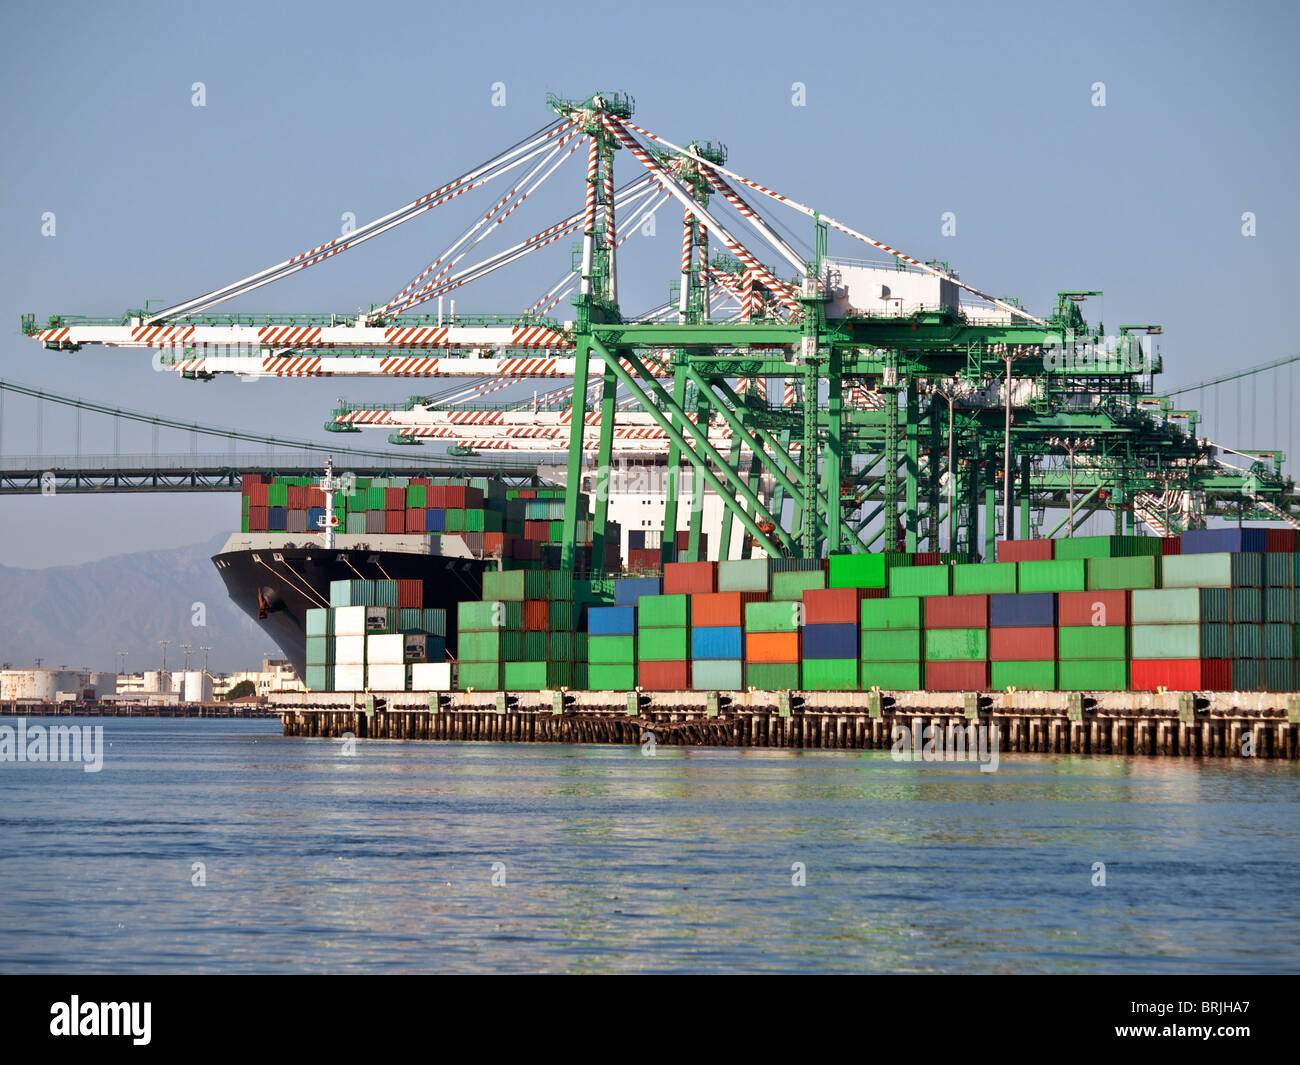 Containers, cranes, bridge and ship in warm late afternoon light. Stock Photo